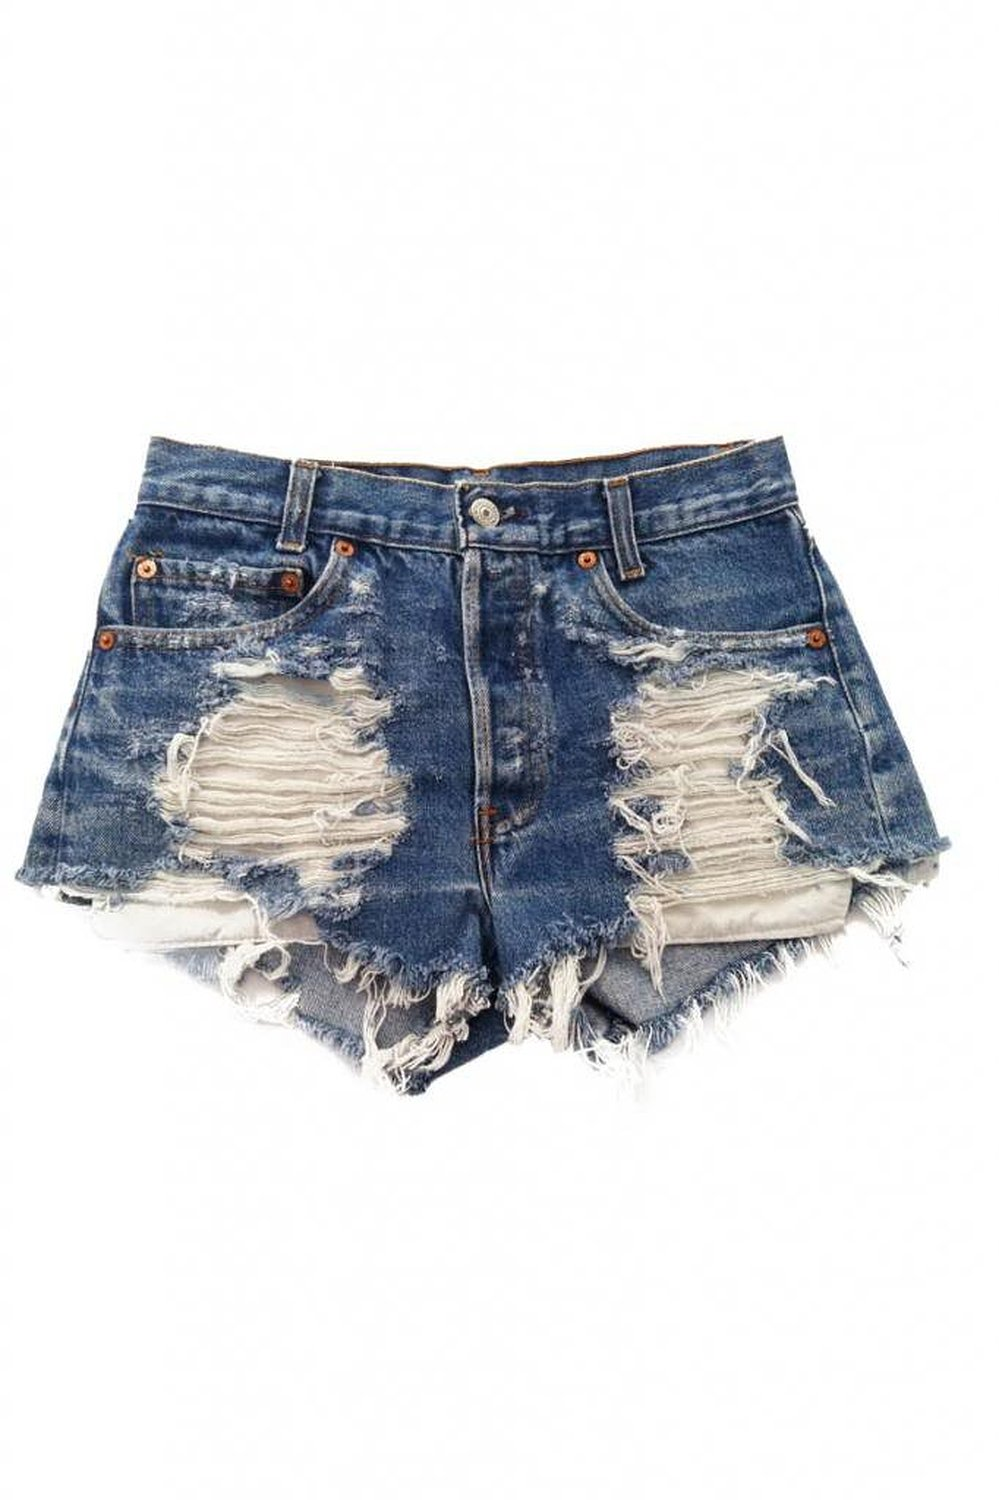 Women's vintage levi's distressed stone dreamer trendy shorts at amazon women's clothing store: